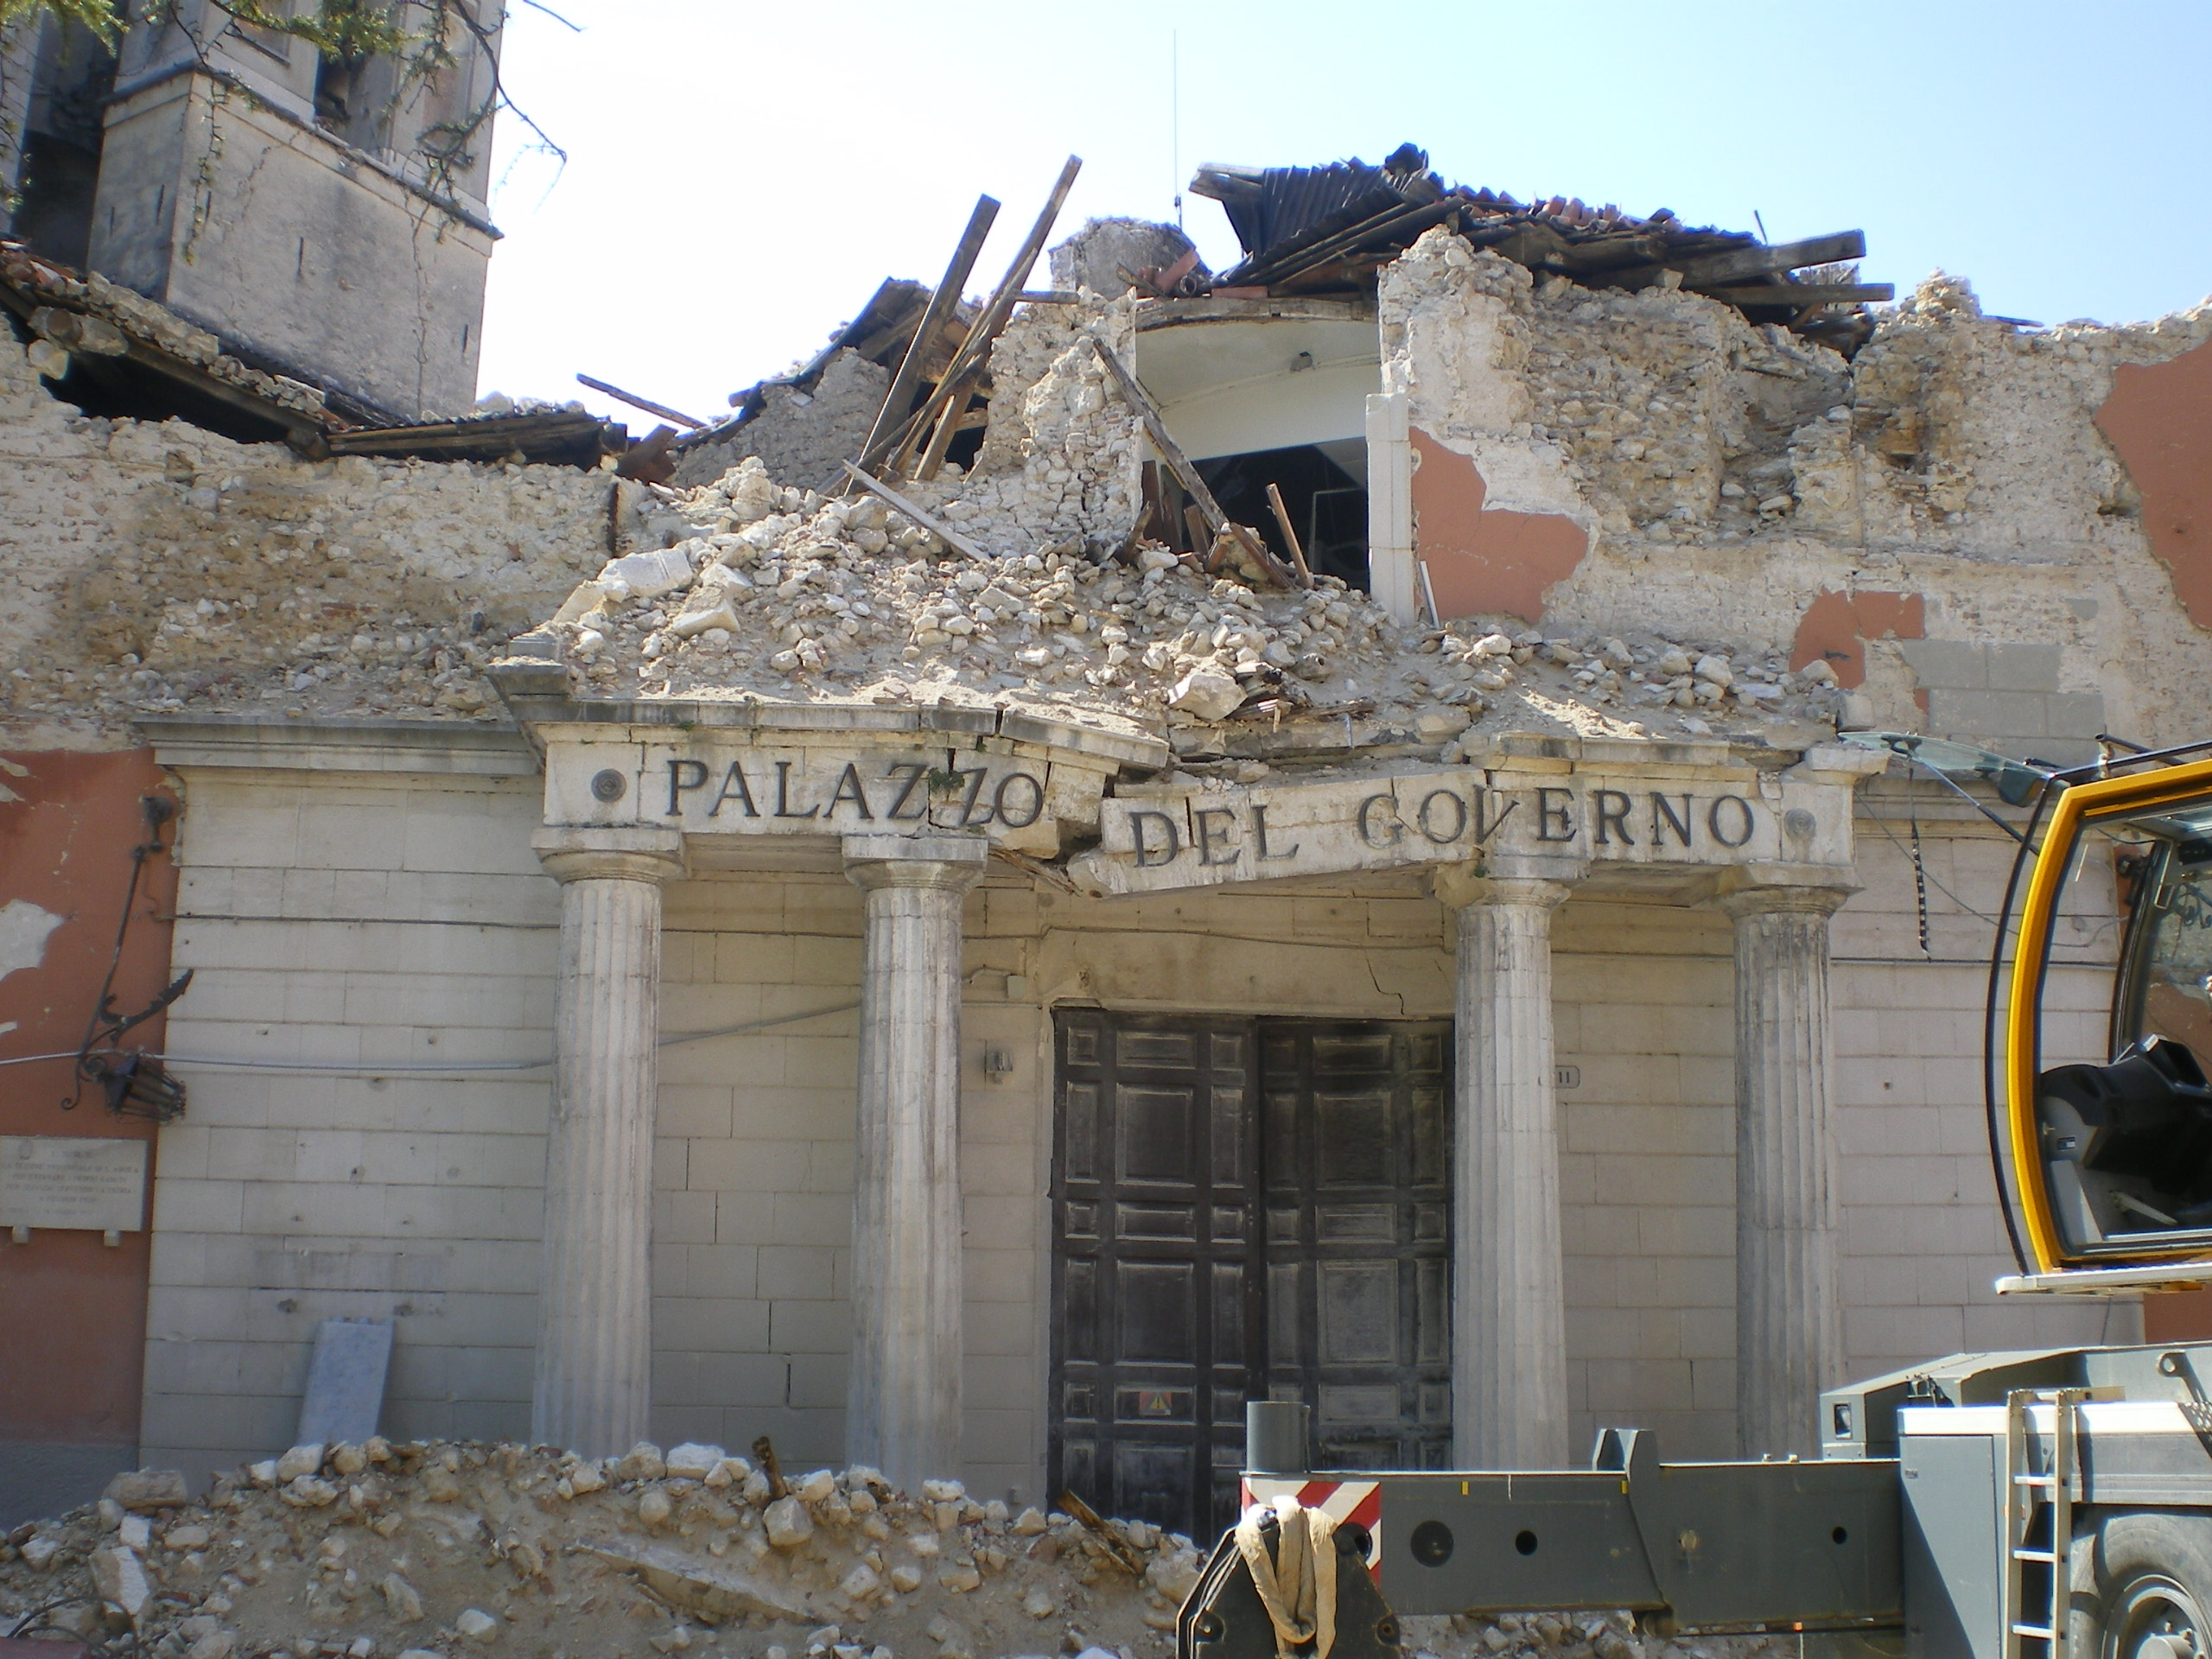 L'Aquila, Abruzzo, Italy. A goverment's office disrupted by the 2009 earthquake. Image and caption courtesy The Wiz83 via Wikimedia Commons.